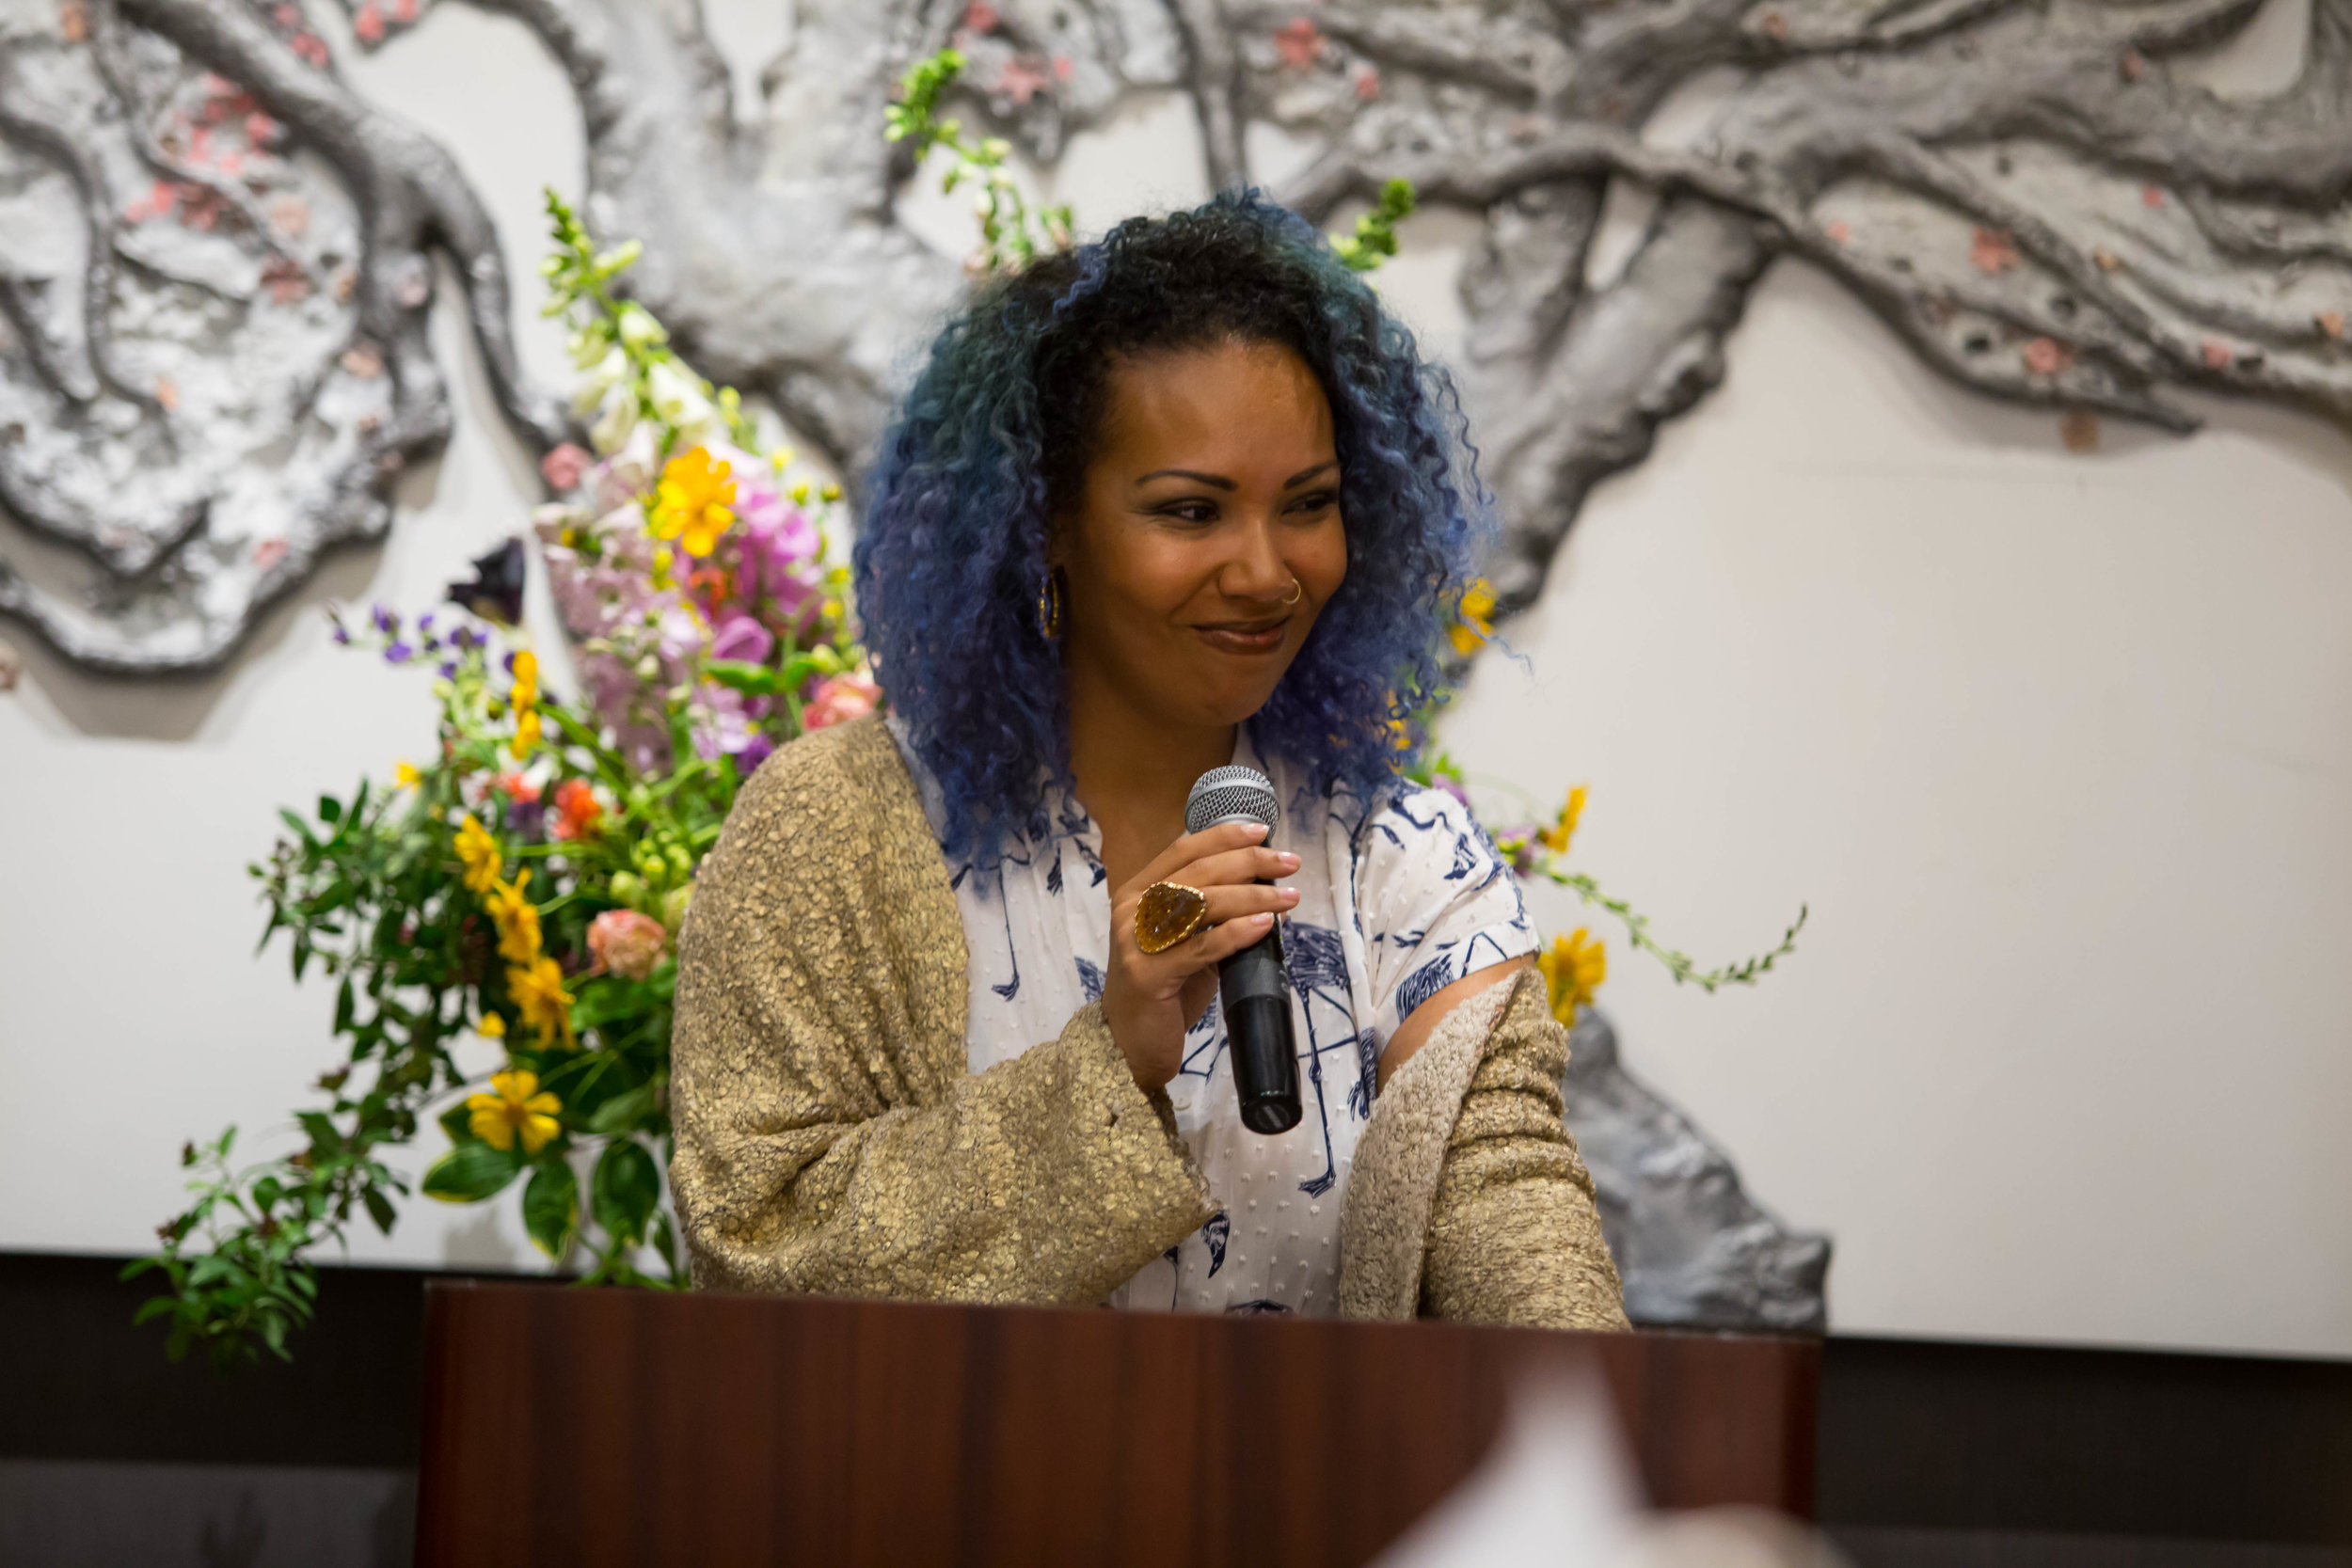 - Our beautiful host, Jamilah Lemieux, helped to set the tone of the uplifting and empowering program.